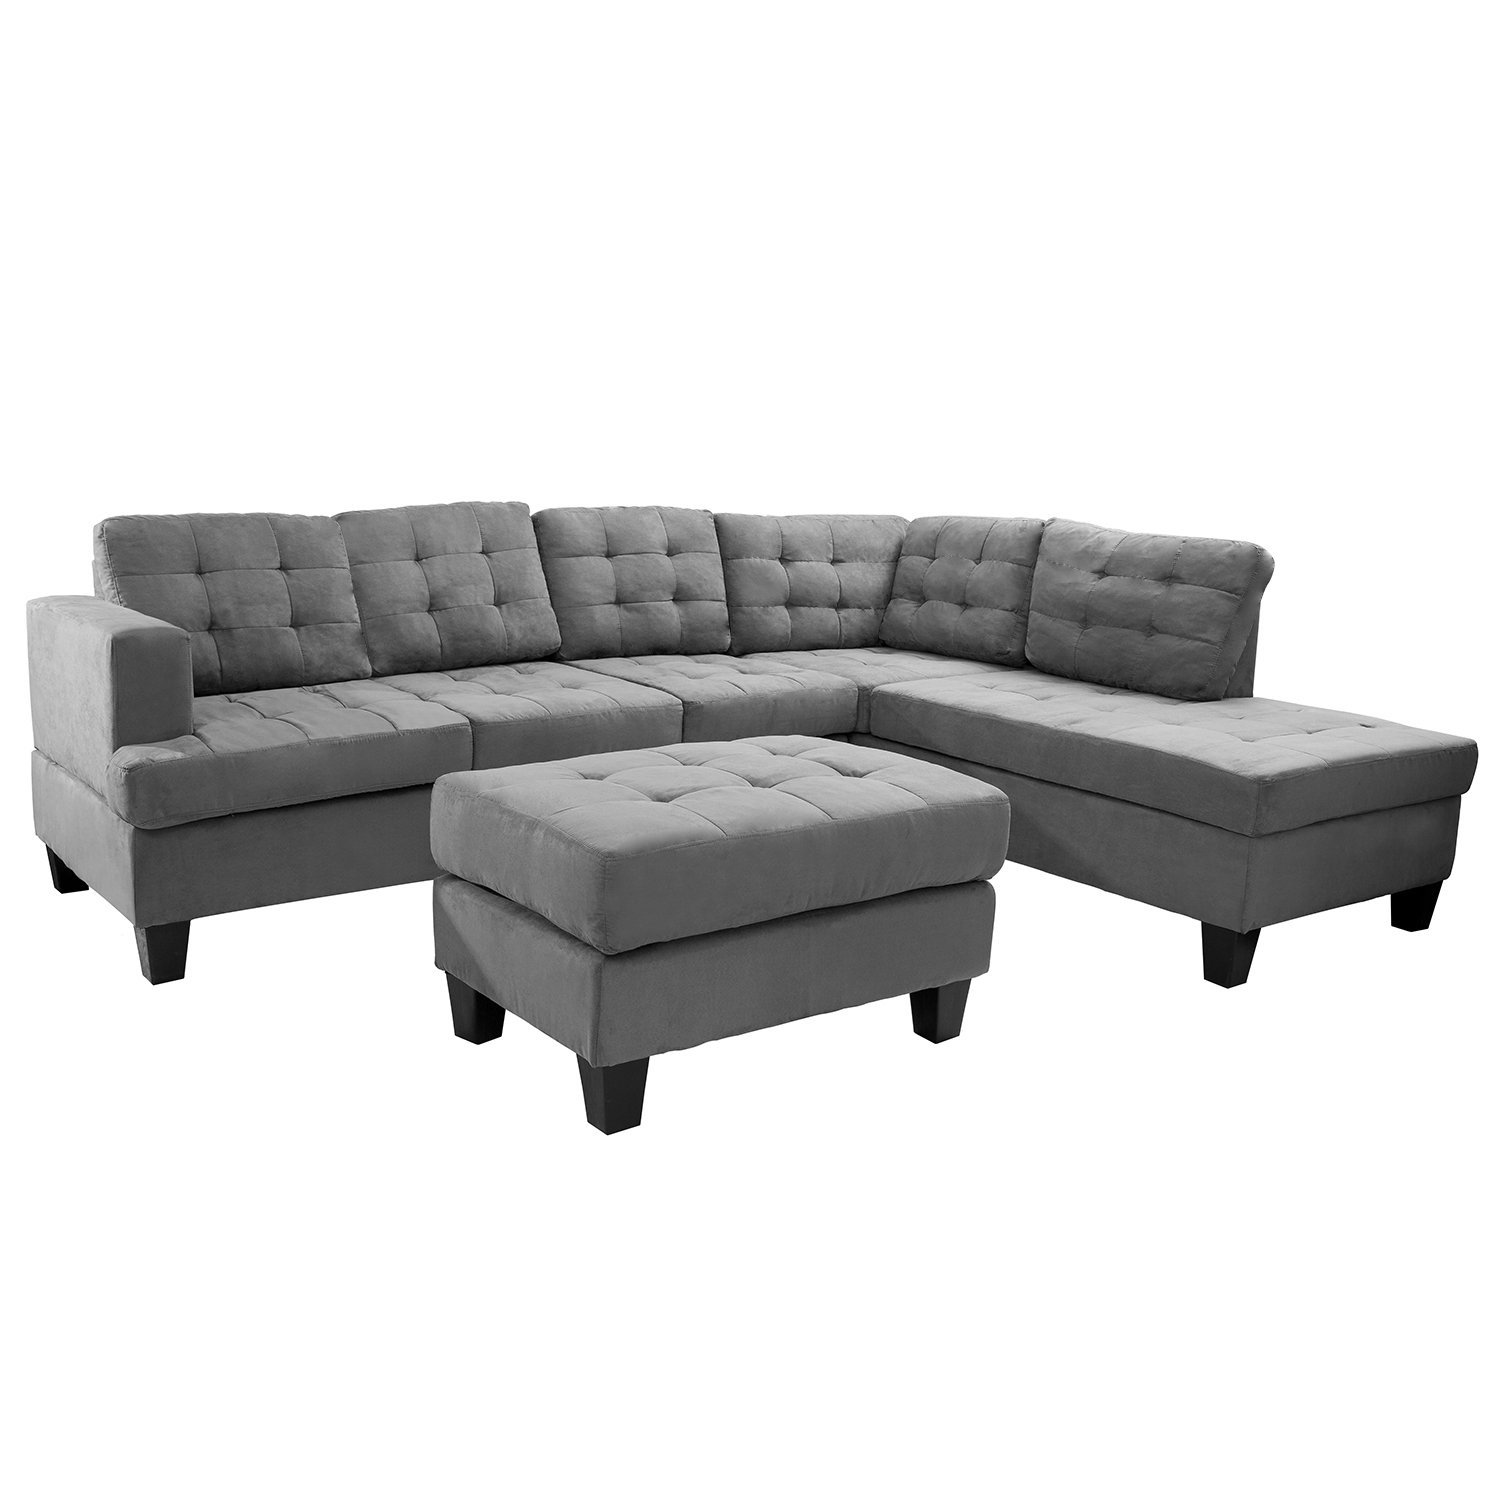 Merax 3-piece Reversible Sectional Sofa with Chaise and Ottoman, Suede Fabric / 6 pillows / Wooden Legs, Grey (Grey)